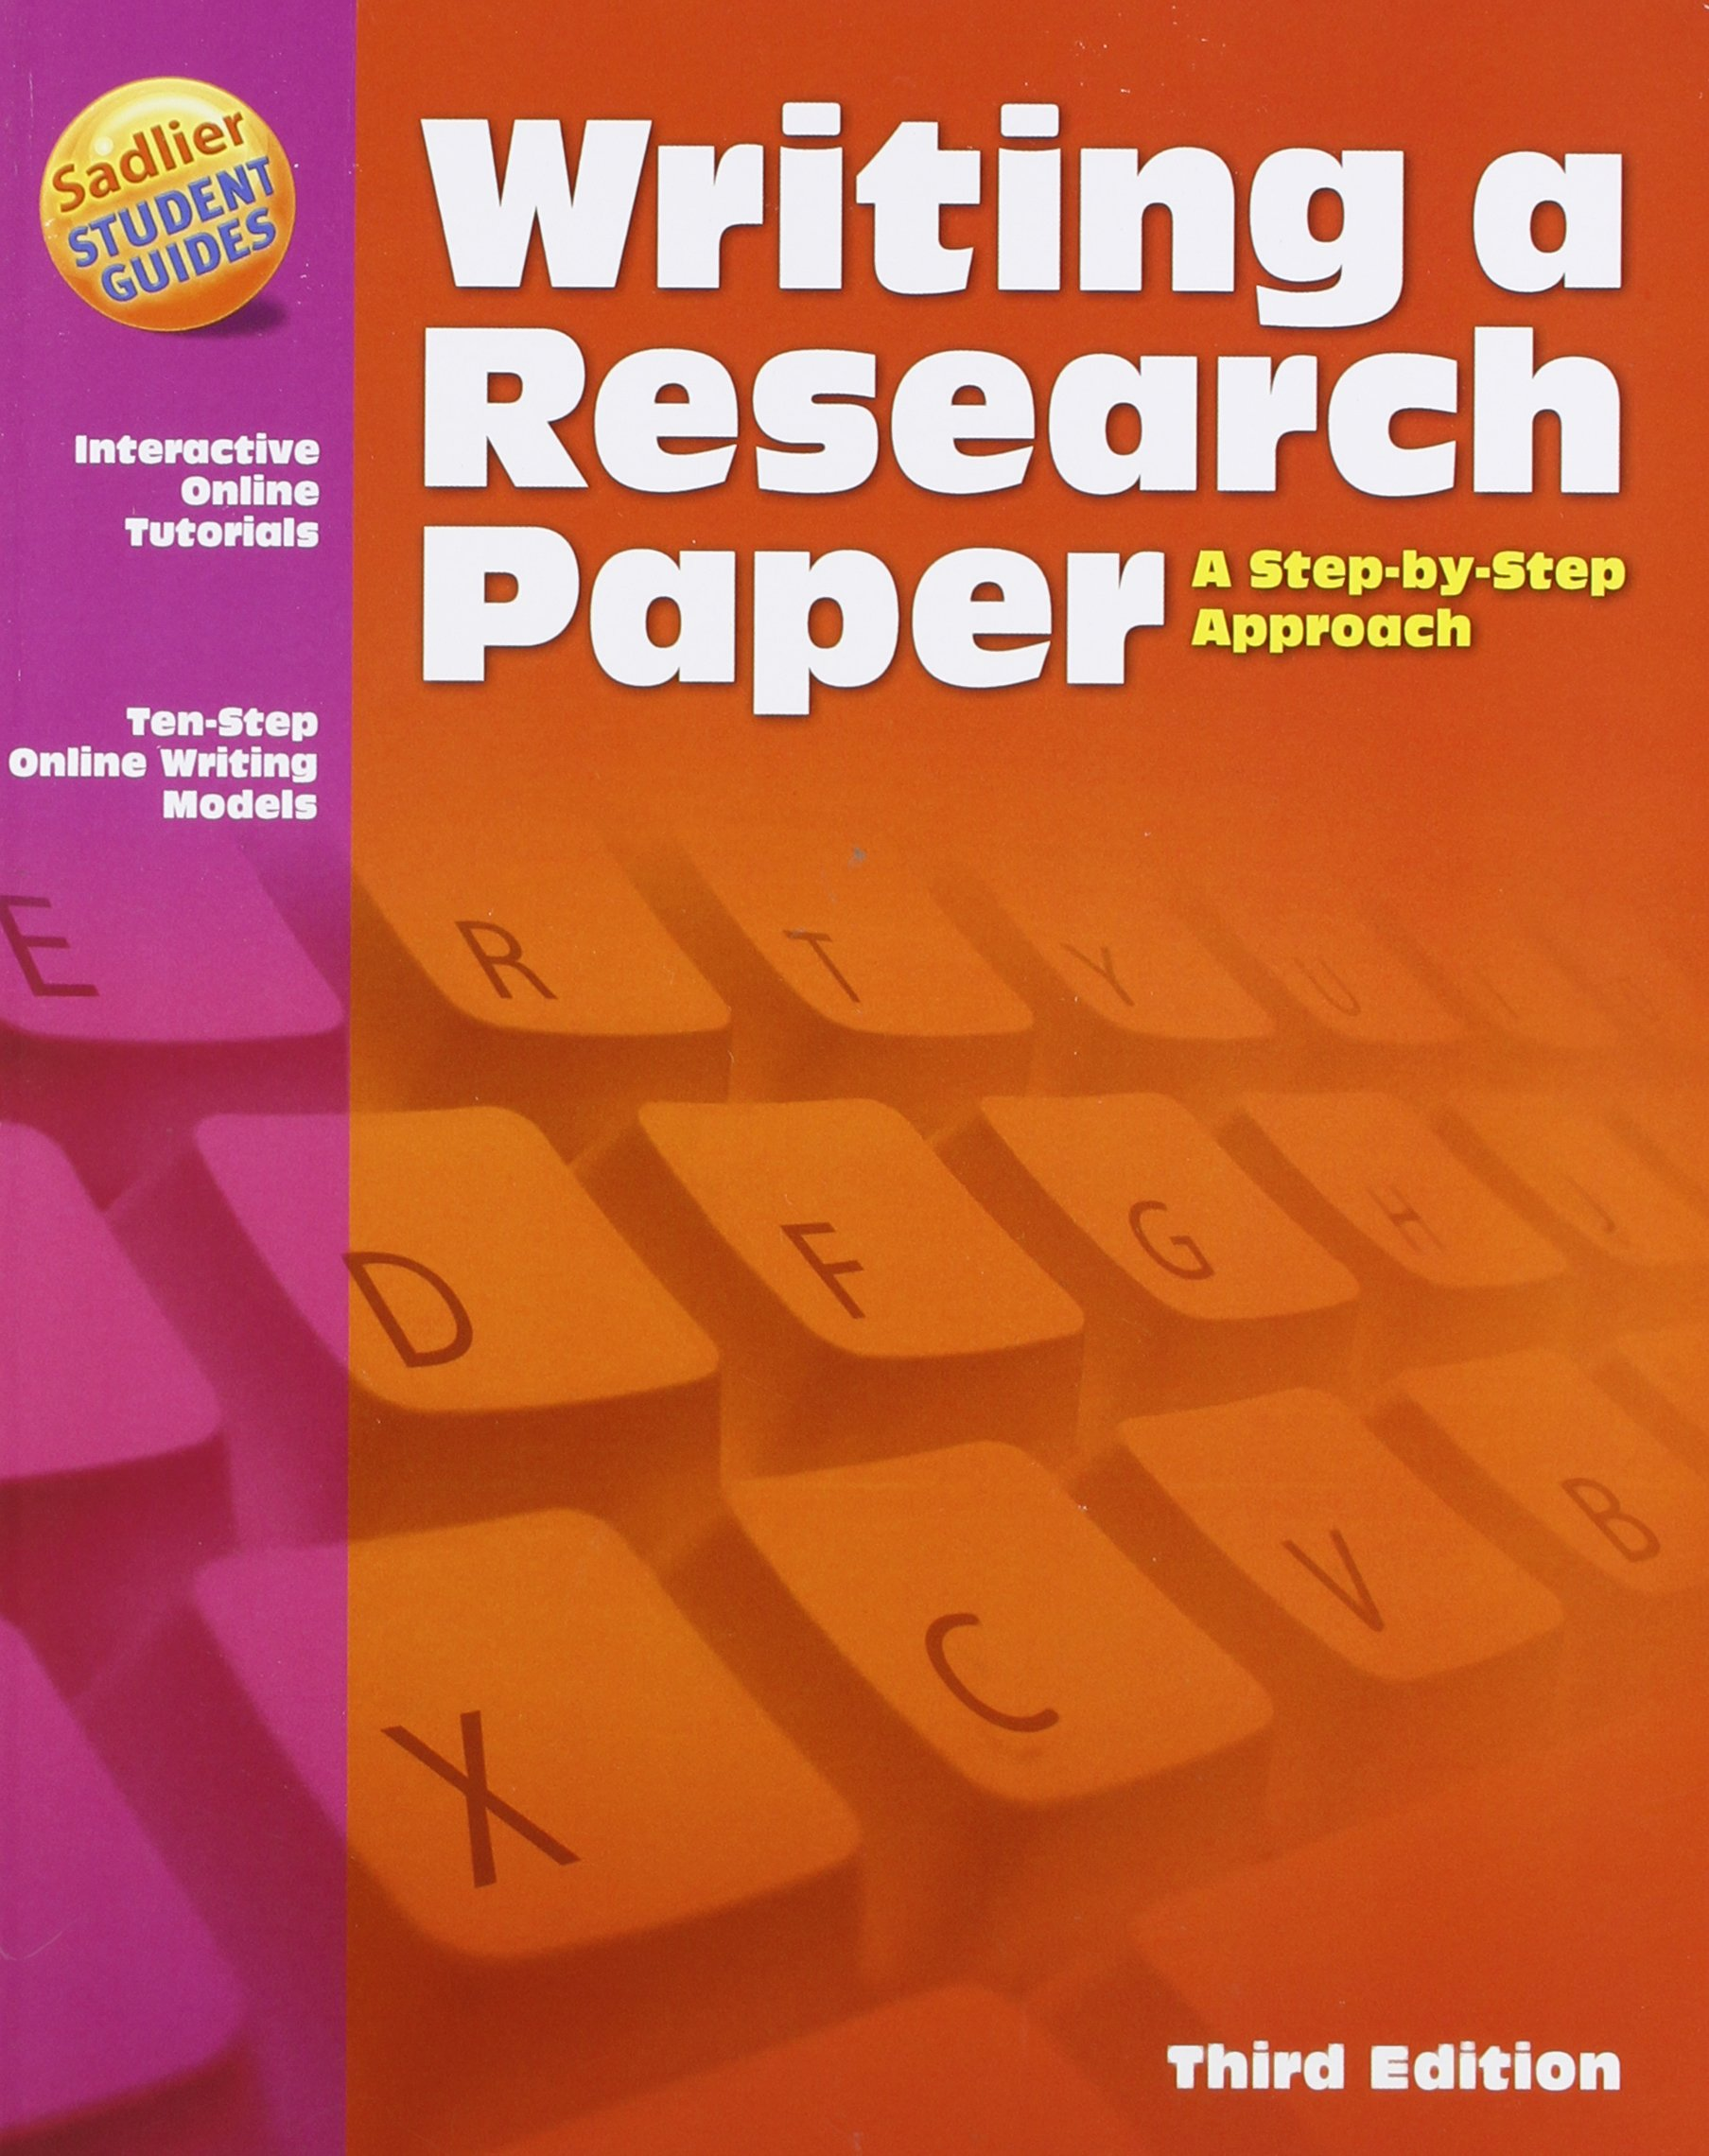 010 81uqfpthpml Research Paper Steps To Writing Fearsome A In Apa Format Mla Style Full